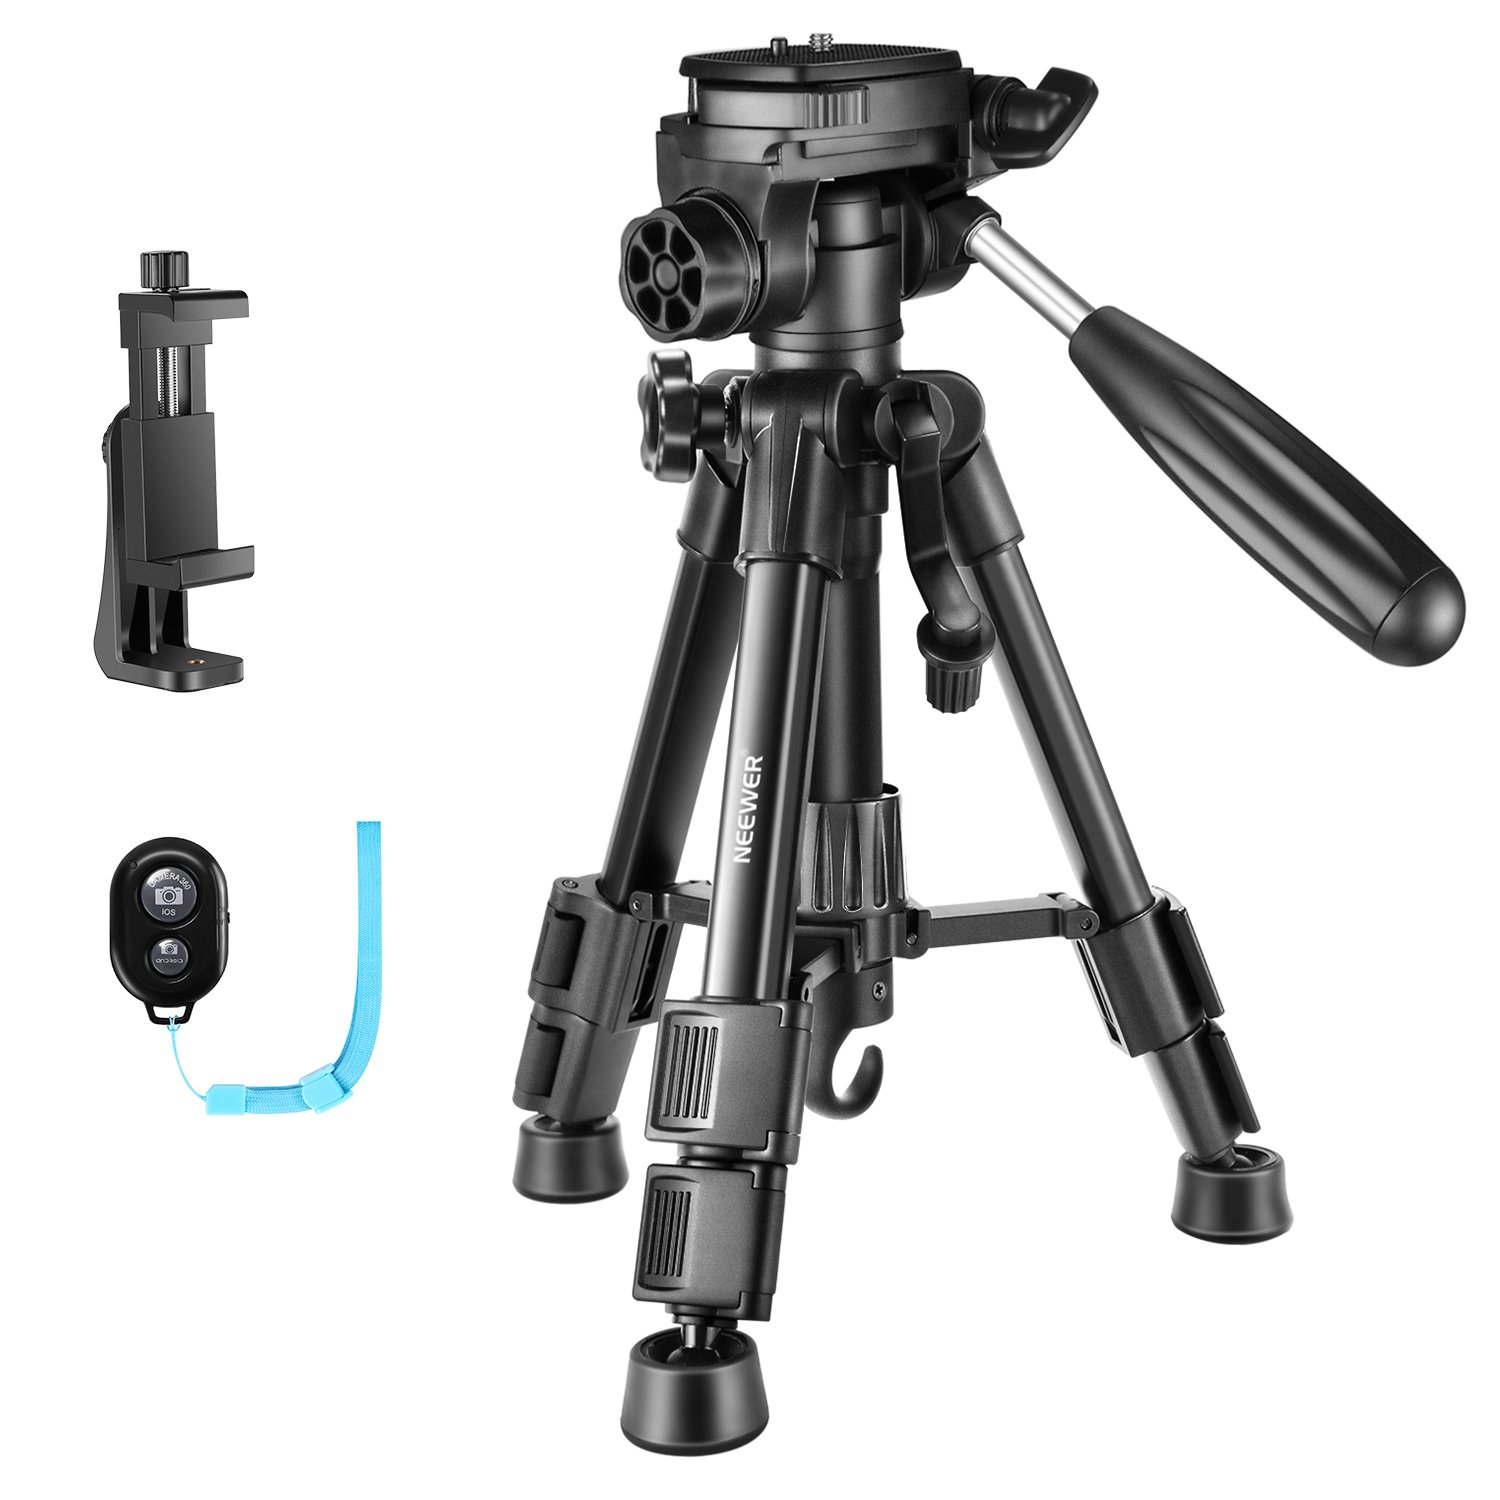 Neewer 24 inches Aluminum Mini Camera Tripod with 3-Way Swivel Pan Head, Cellphone Holder, Remote and Carrying Bag for iPhone, Samsung, Huawei Smartphone, DSLR Camera, Load up to 11 Pounds by Neewer